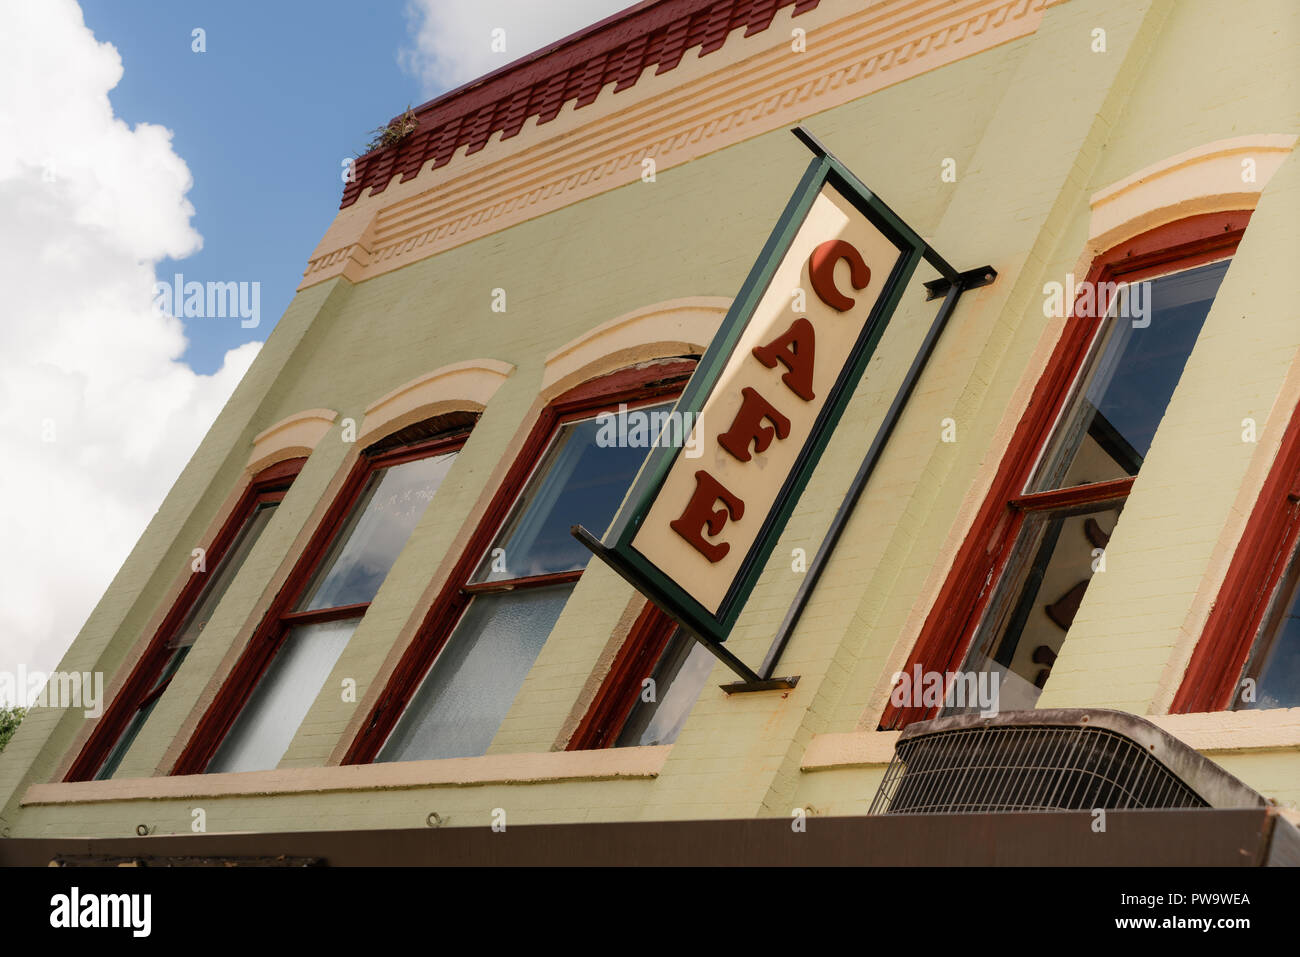 Tight crop with blue sky and clouds building wall cafe sign slanted view - Stock Image